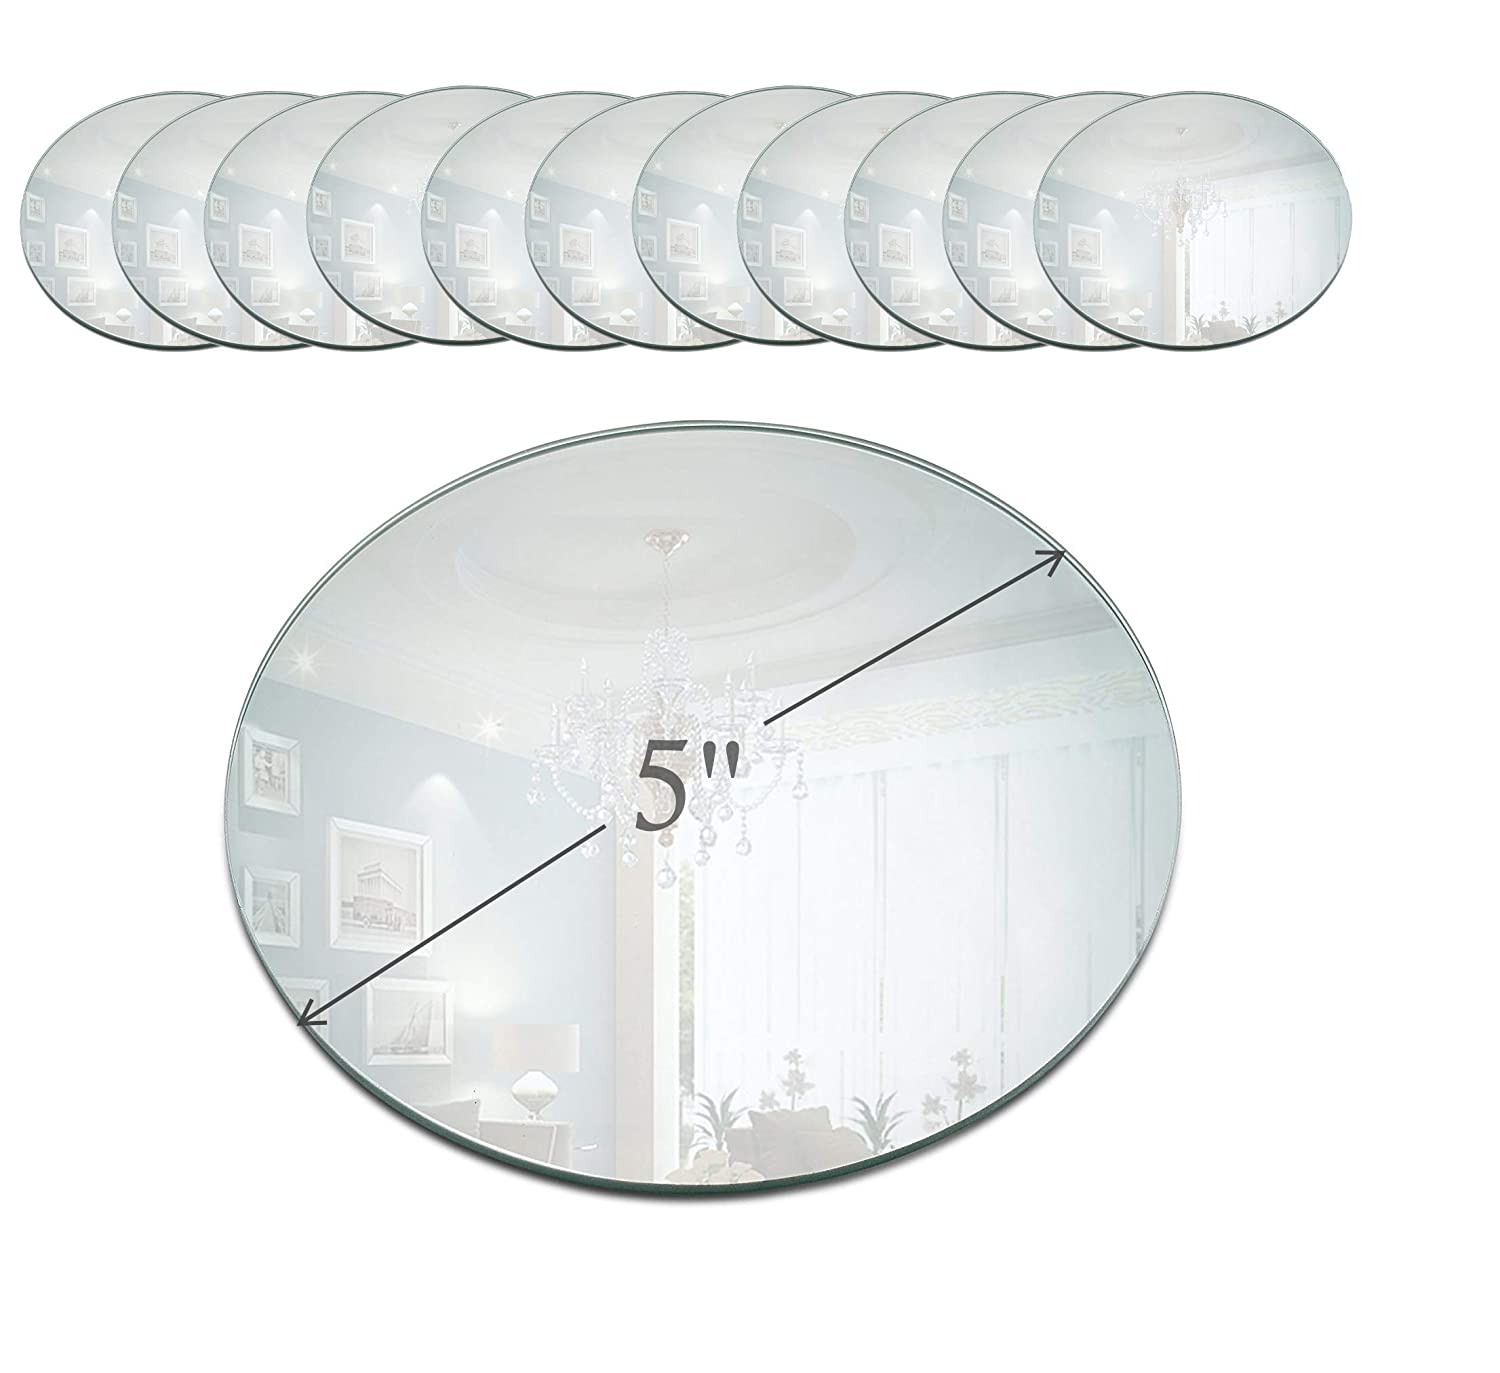 Light In the Dark 5 Inch Round Mirror Candle Plate with Beveled Edge Set of 12 - Small Round Mirrors for Centerpieces, Wall Décor, Crafts Wall Décor